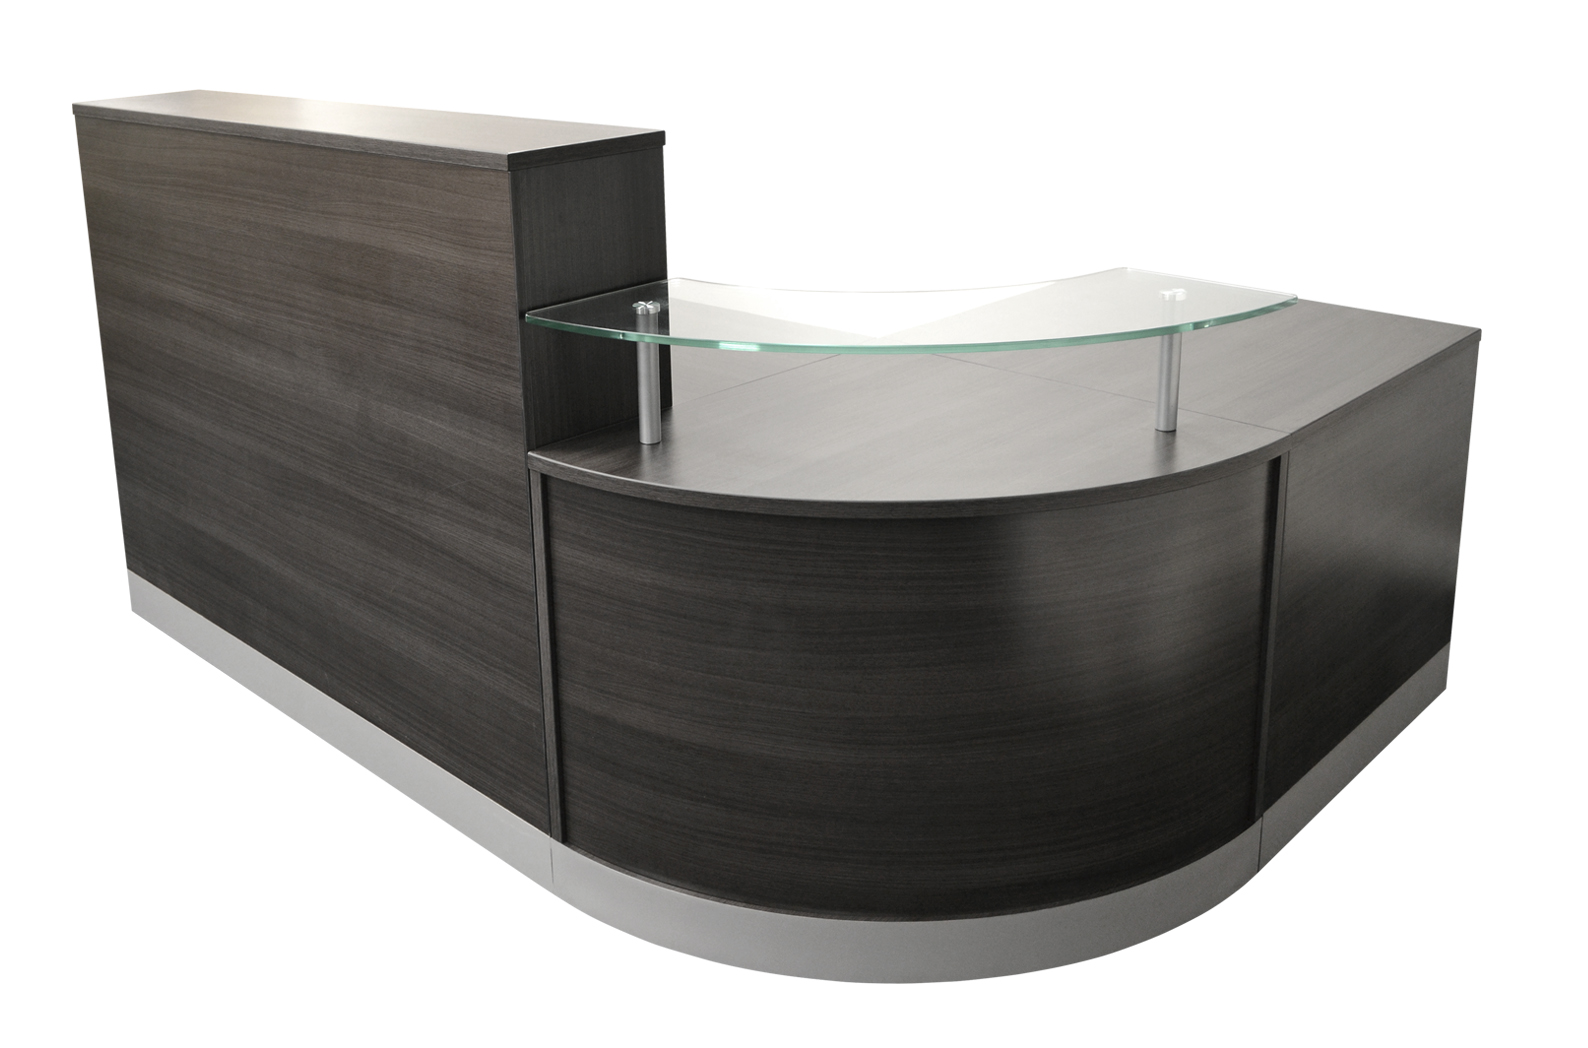 Initial Curved Reception Counter